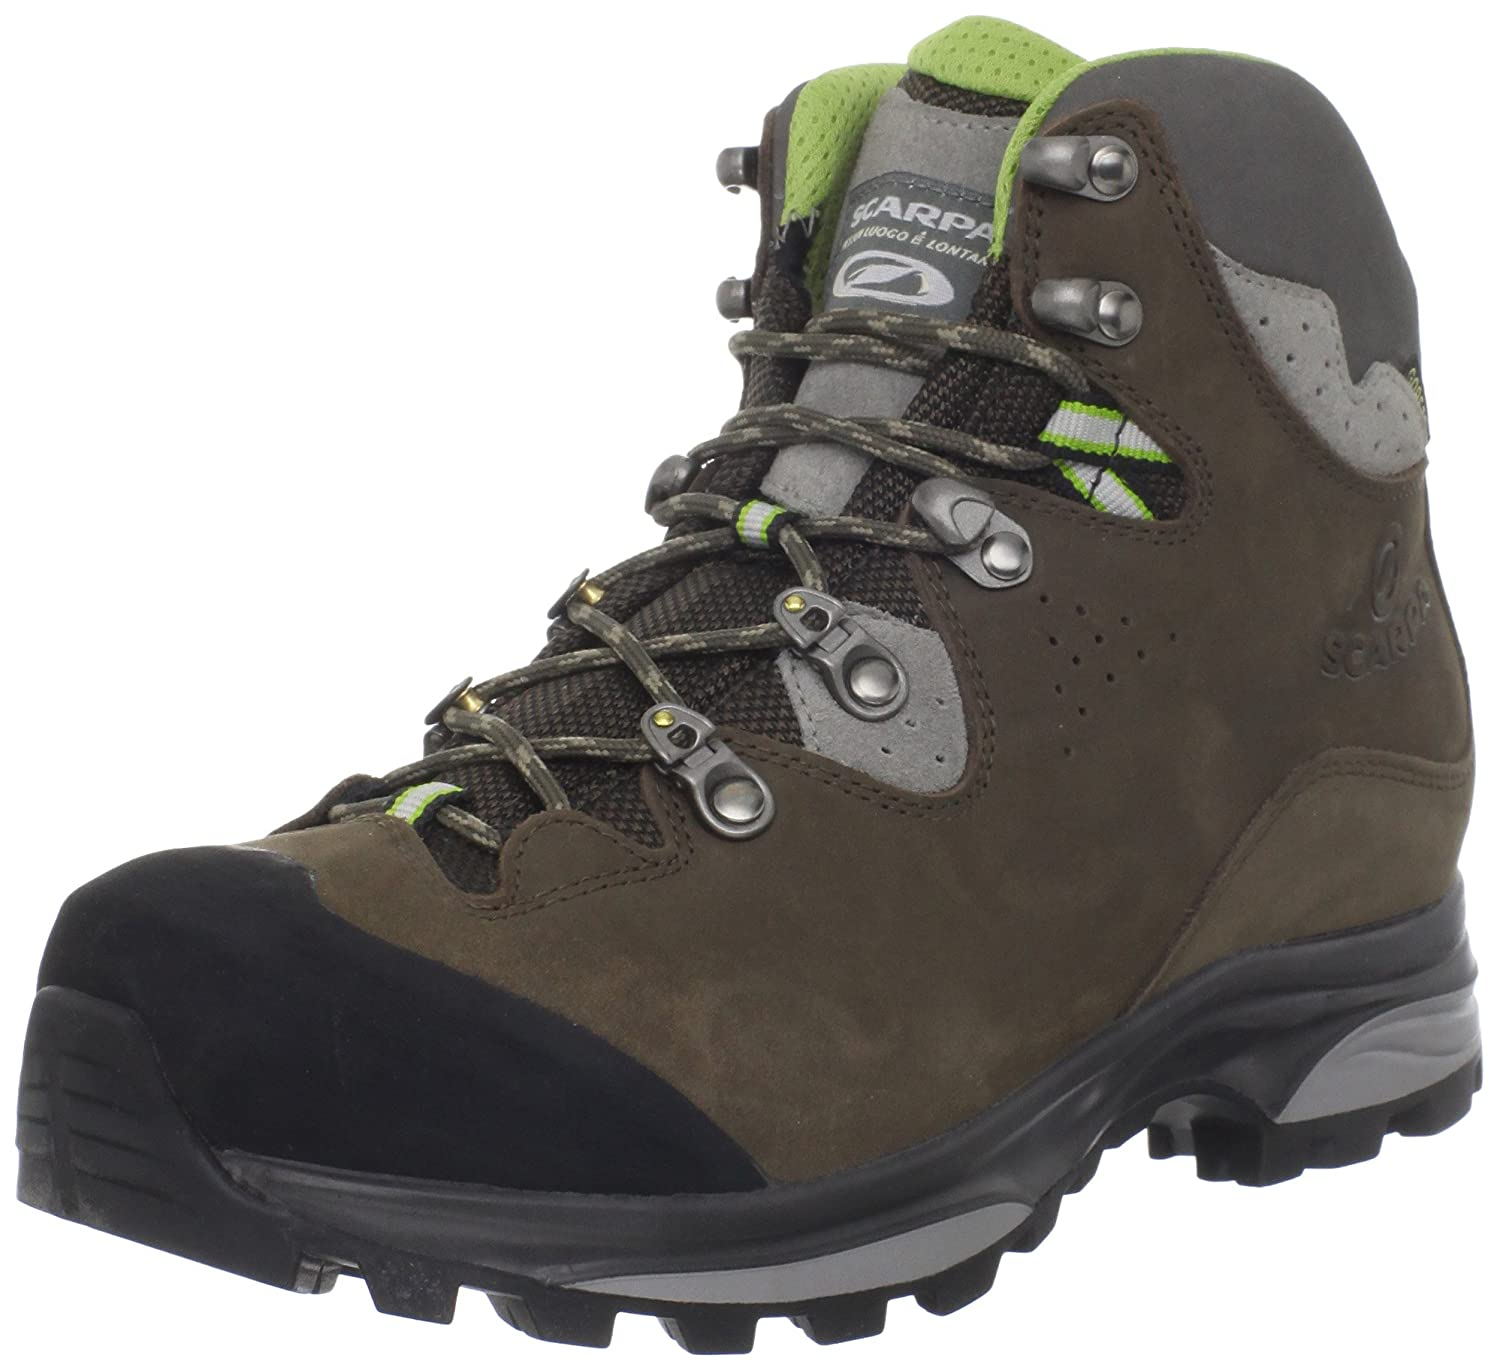 SCARPA Women's Hunza GTX Hiking Boot B005LCPXK4 42 M EU / 10 B(M) US|Dark Brown